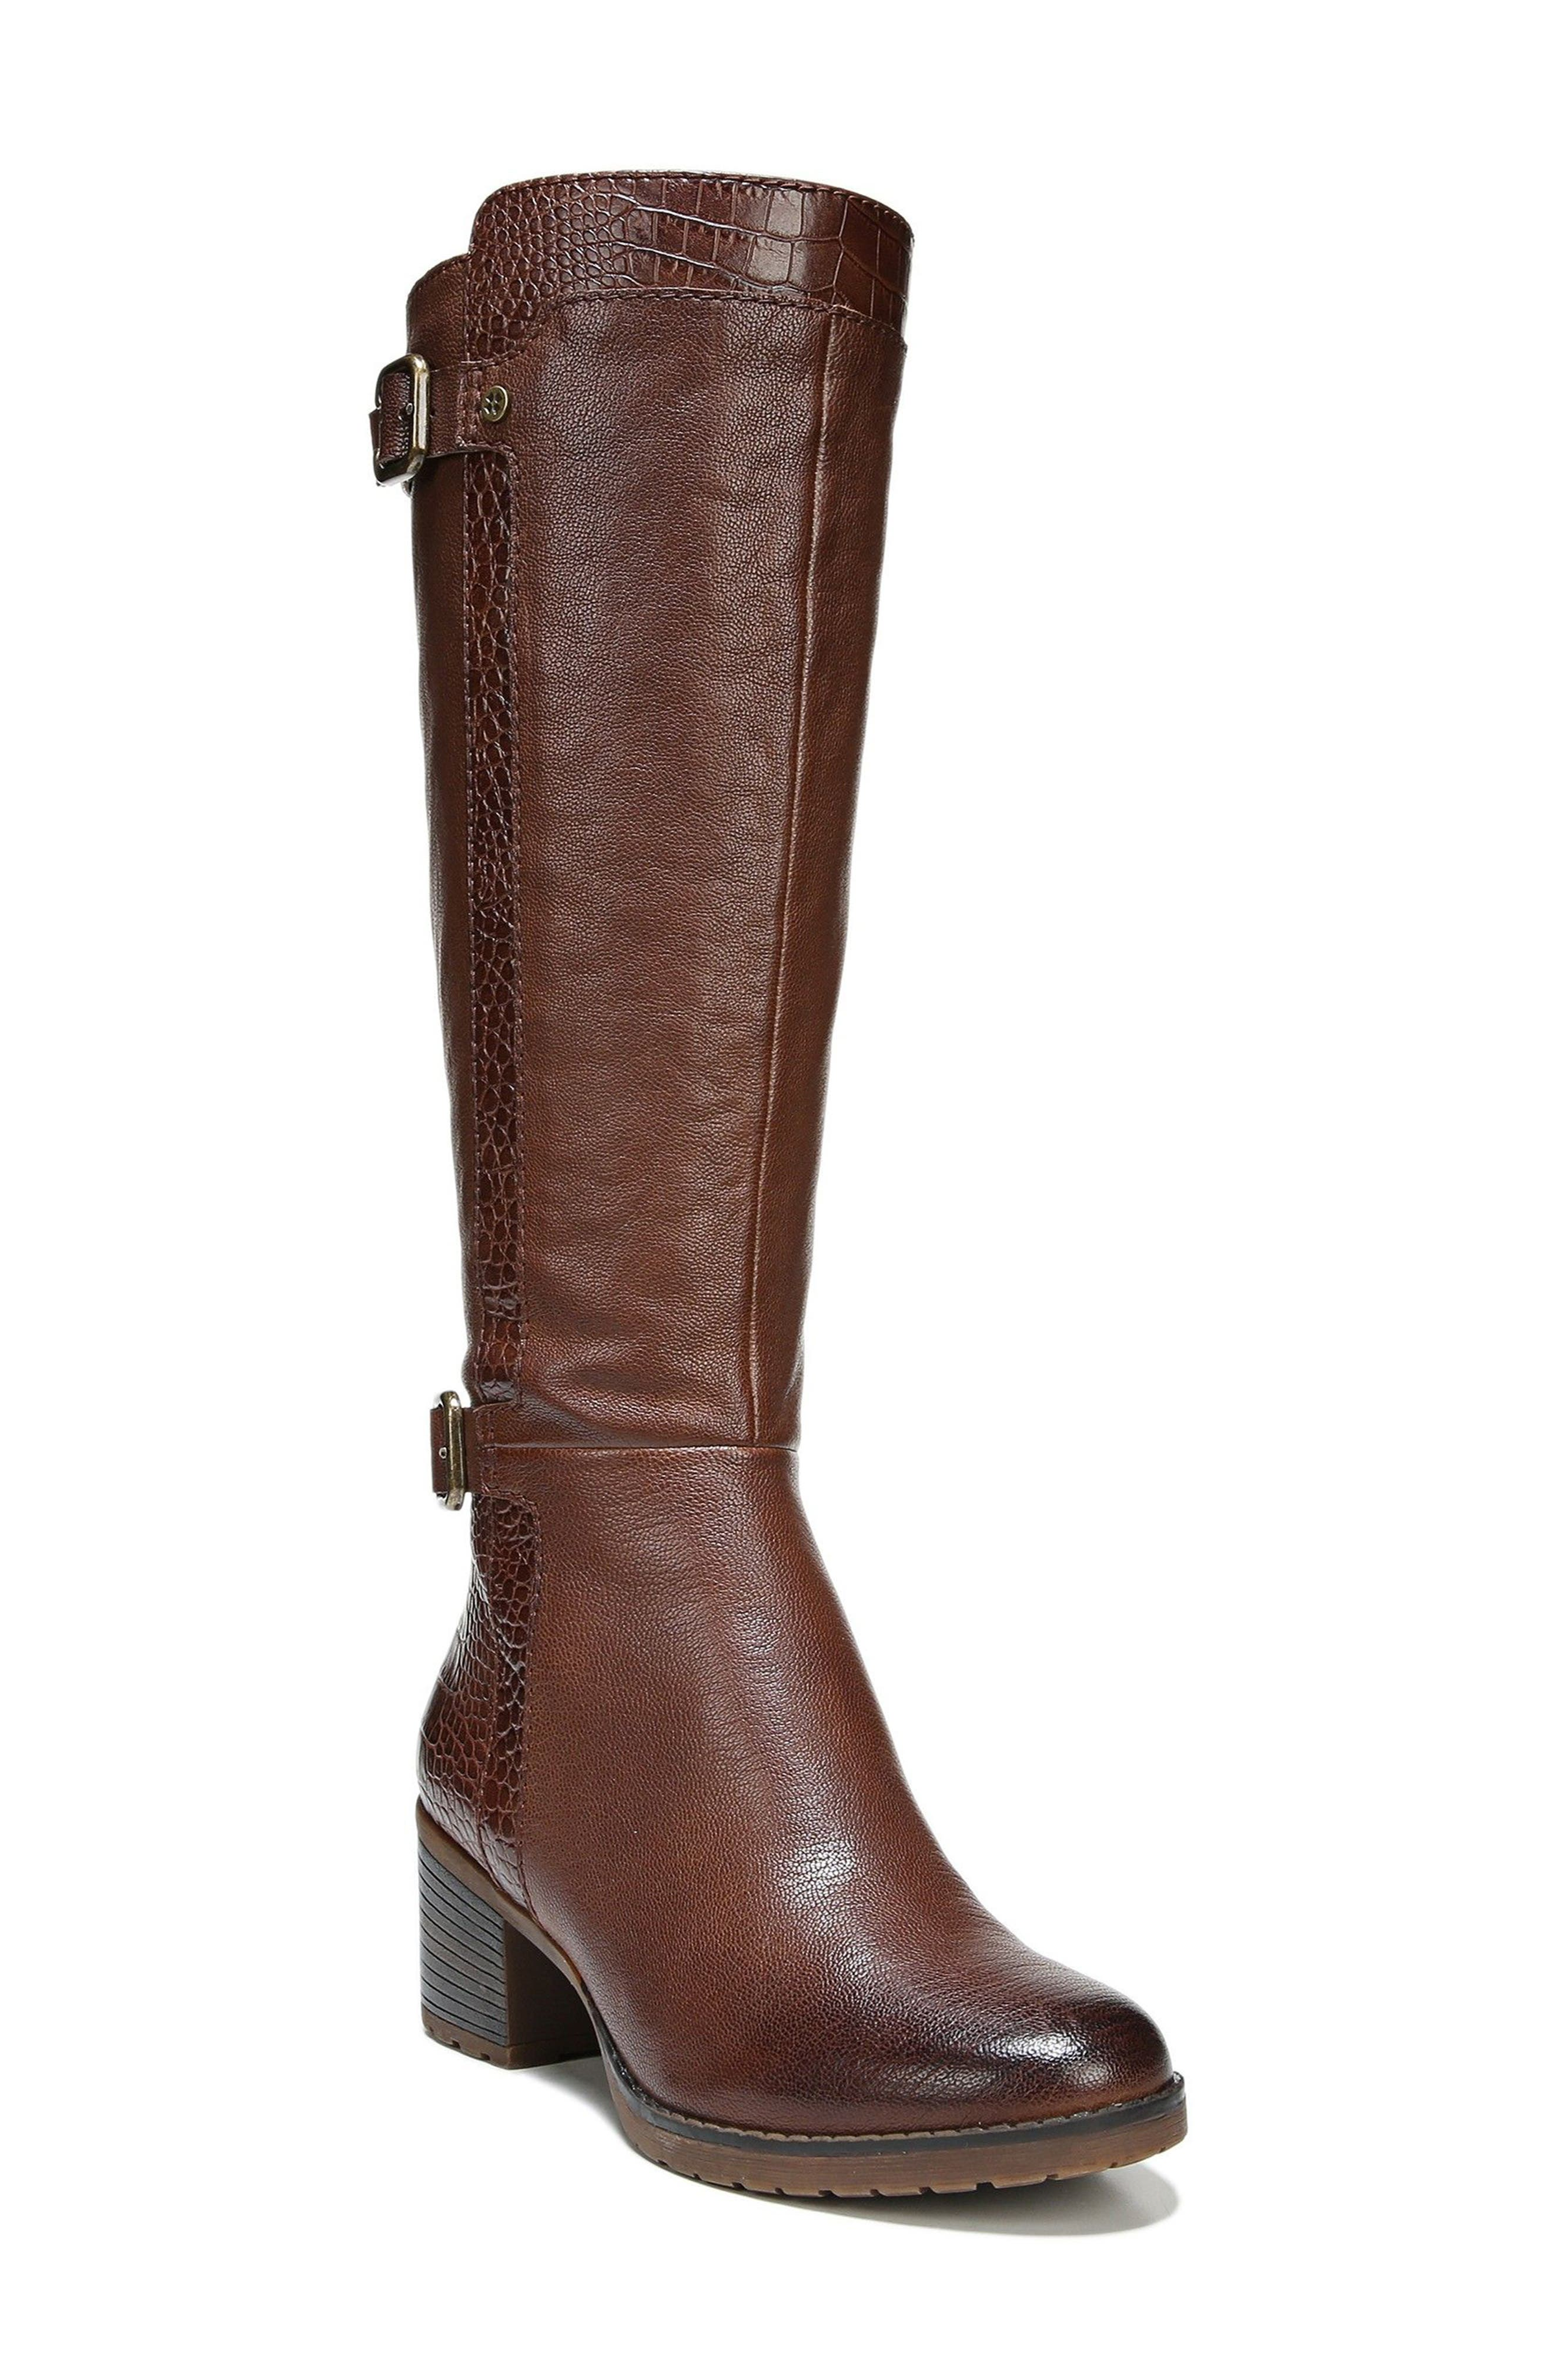 Main Image - Naturalizer Rozene Knee High Boot (Women)